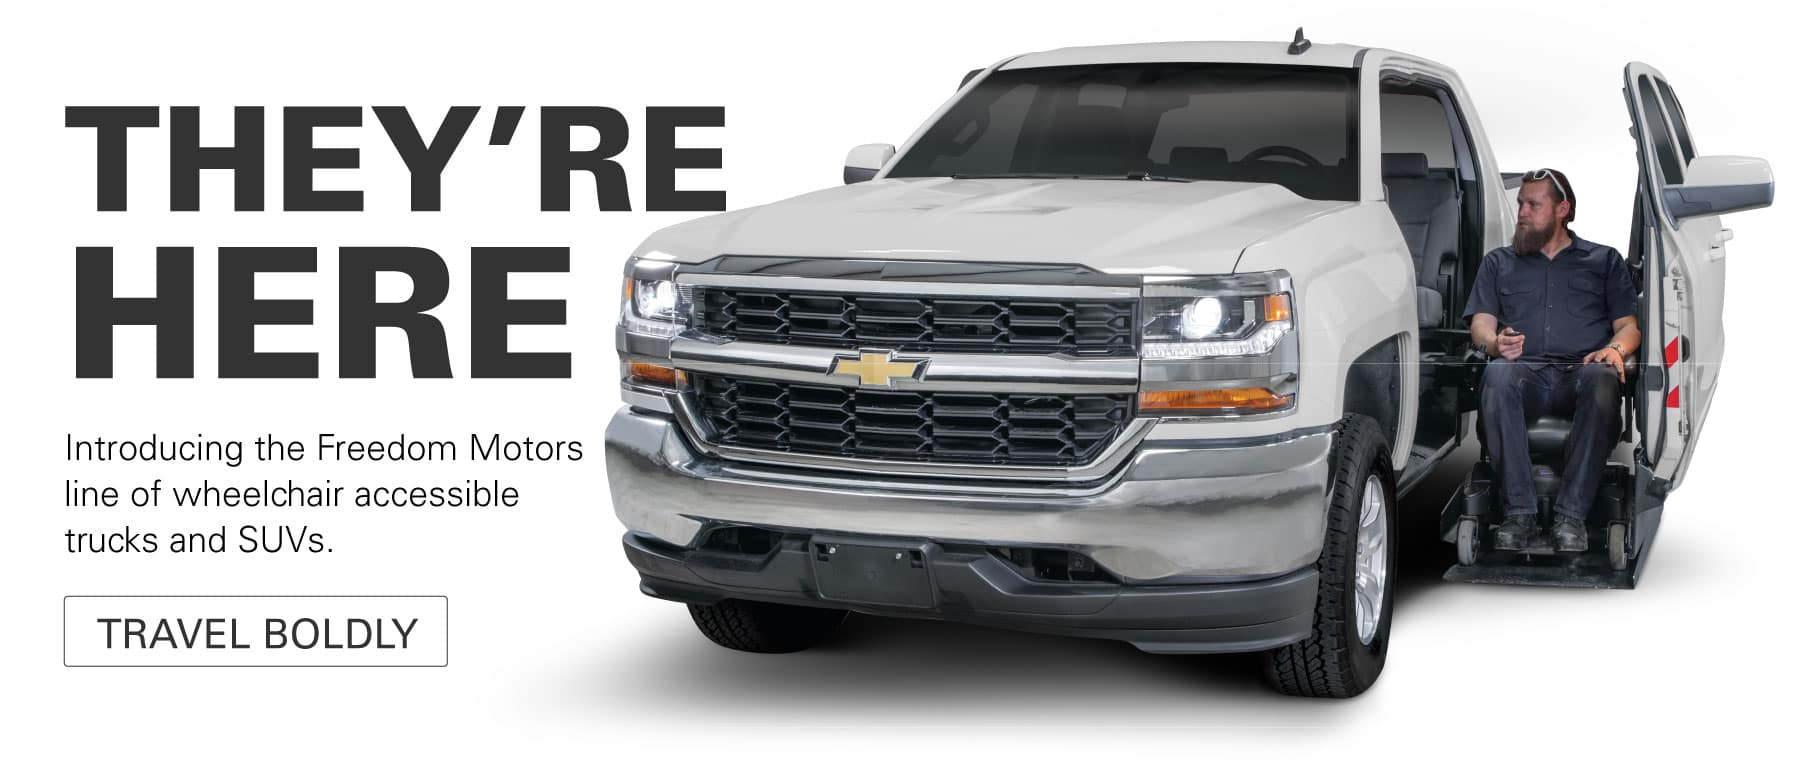 Introducing the new Freedom Motors wheelchair accessible truck and full size SUV line!